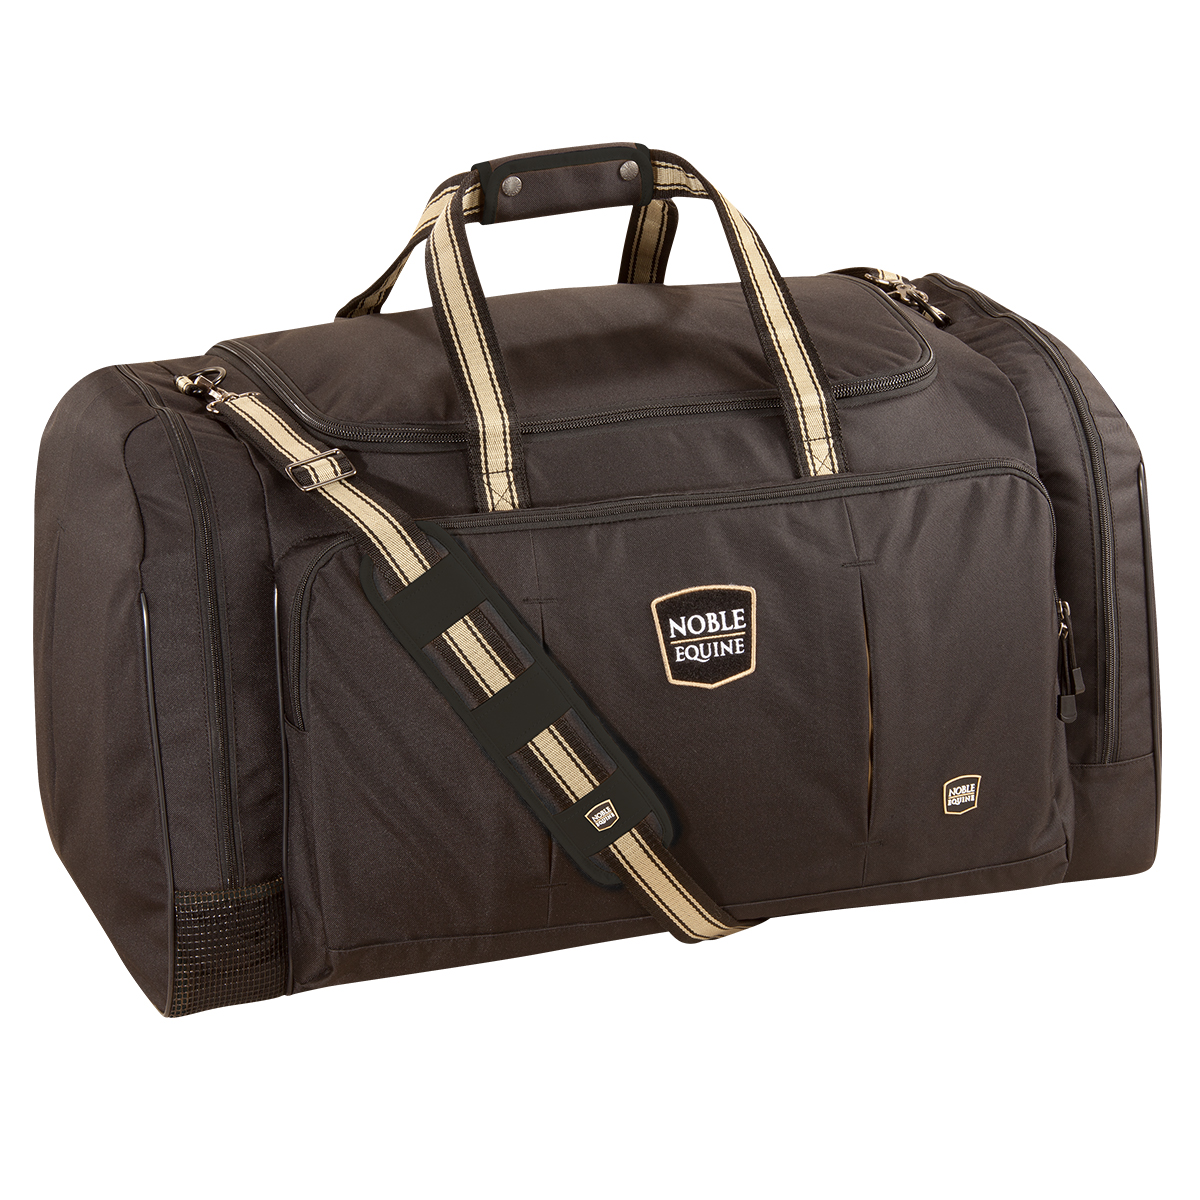 Noble Equine 7.2 Hands Duffle